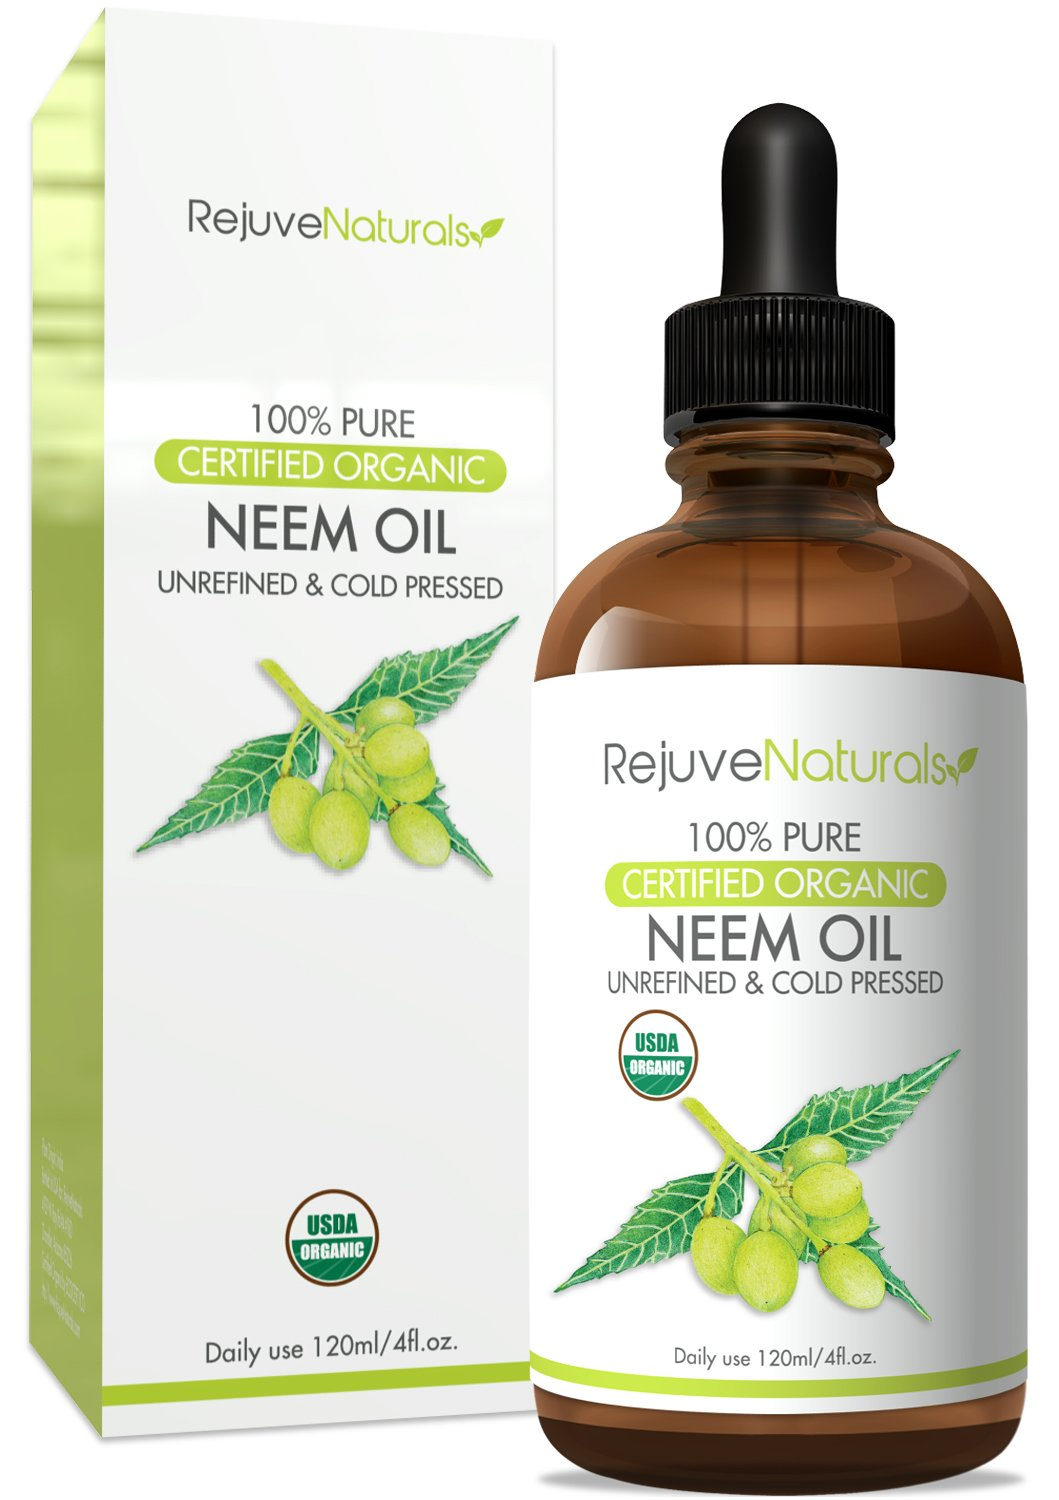 Organic Neem Oil, 100% Pure, Cold Pressed, USDA Certified Organic by RejuveNaturals, 4oz | For Hair, Skin & Nails | All Natural Anti Aging Moisturizer, Antiseptic, Insecticide & Fungicide